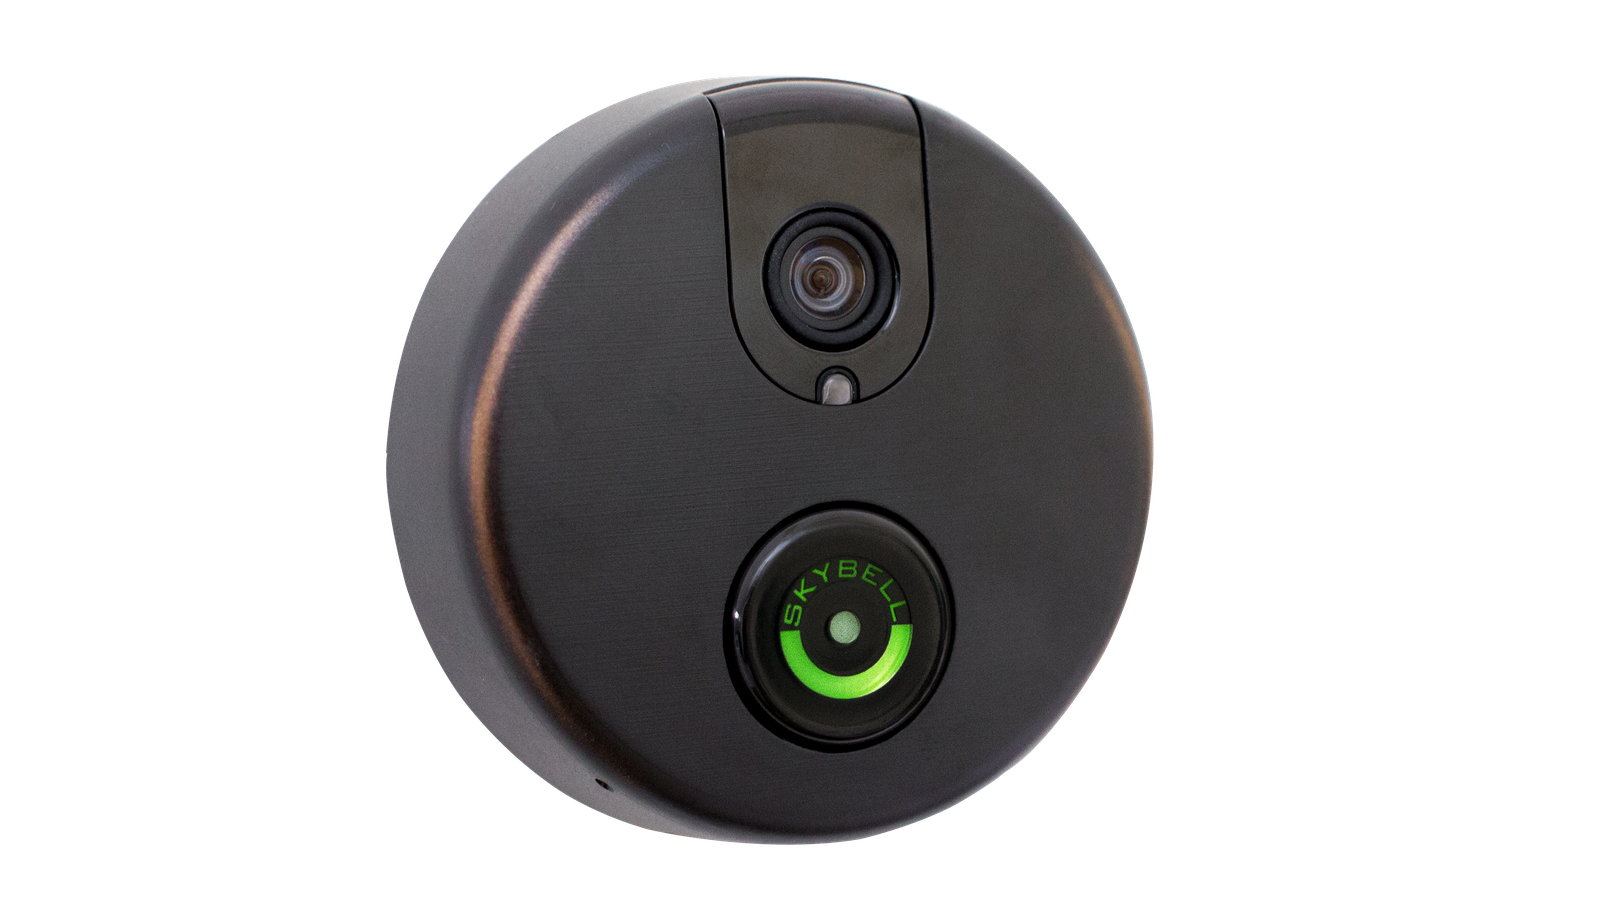 Skybell S Internet Doorbell Gets Faster With Always On Wi